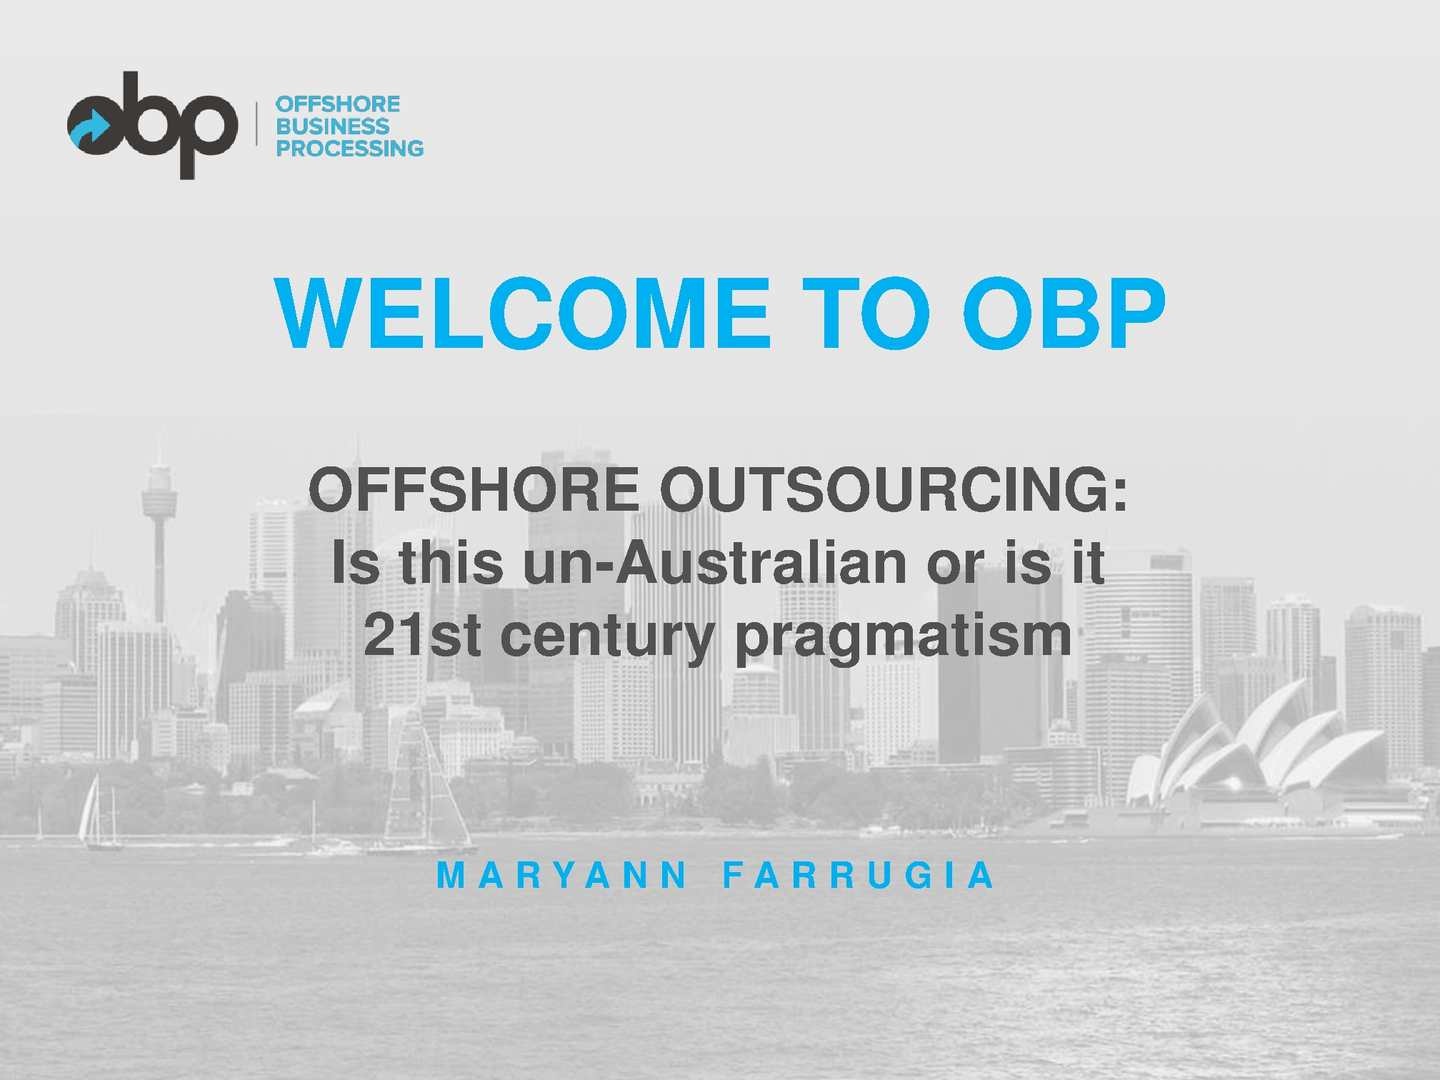 management offshore outsourcing Outsourcing is a business practice used to reduce costs by shifting certain business functions to a third party for a significant period of time.